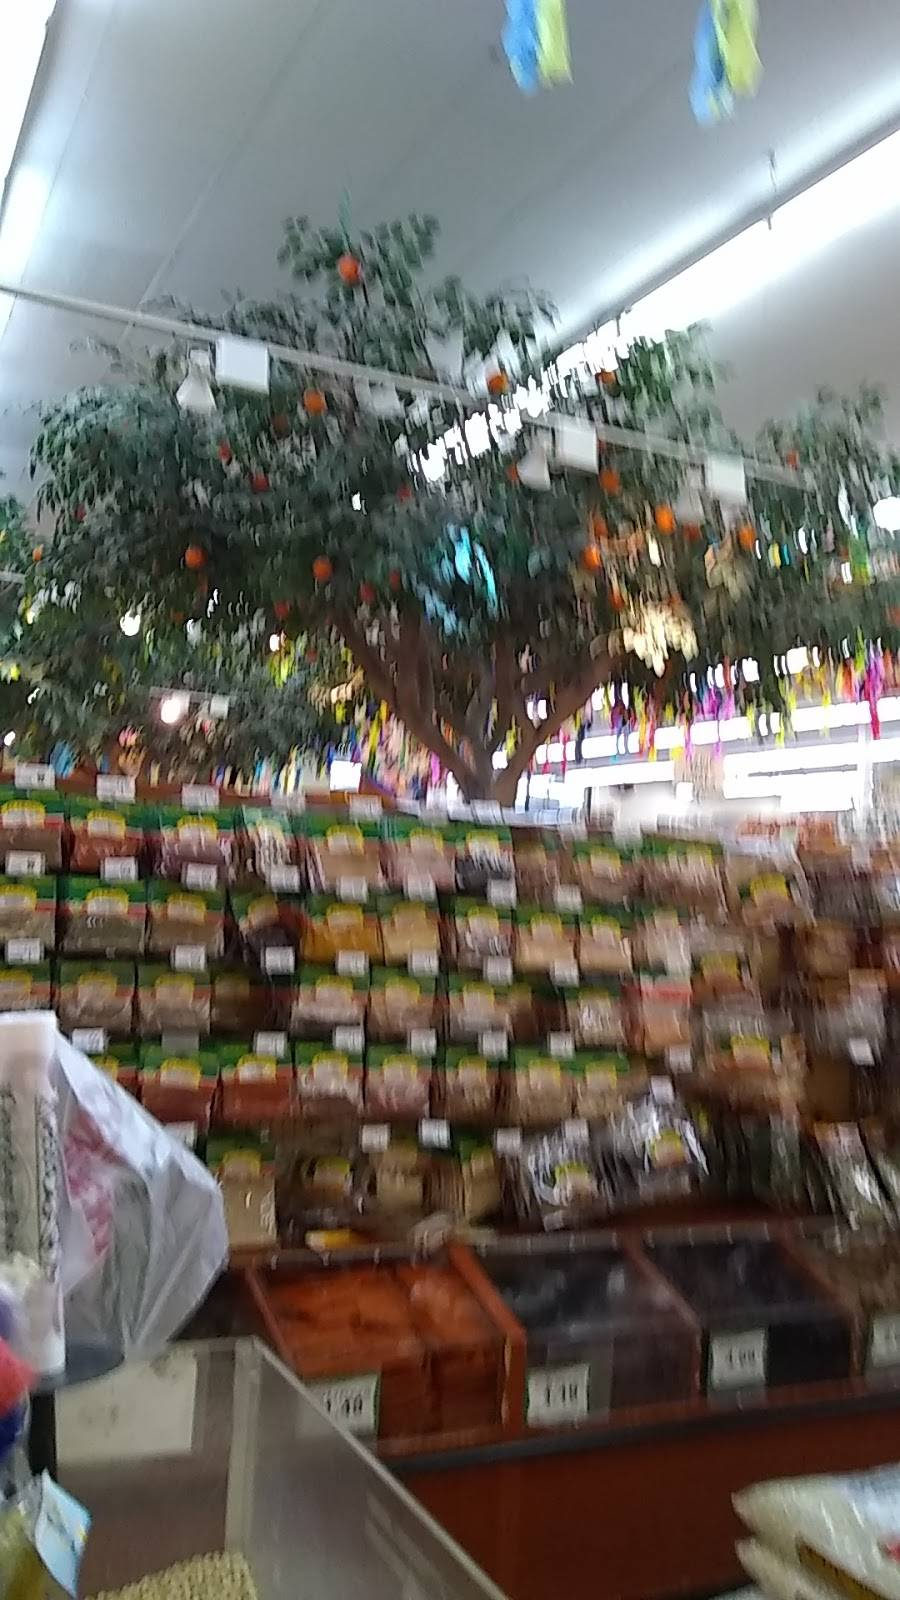 Cardenas Markets | bakery | 31952 Mission Trail, Lake Elsinore, CA 92530, USA | 9514716860 OR +1 951-471-6860